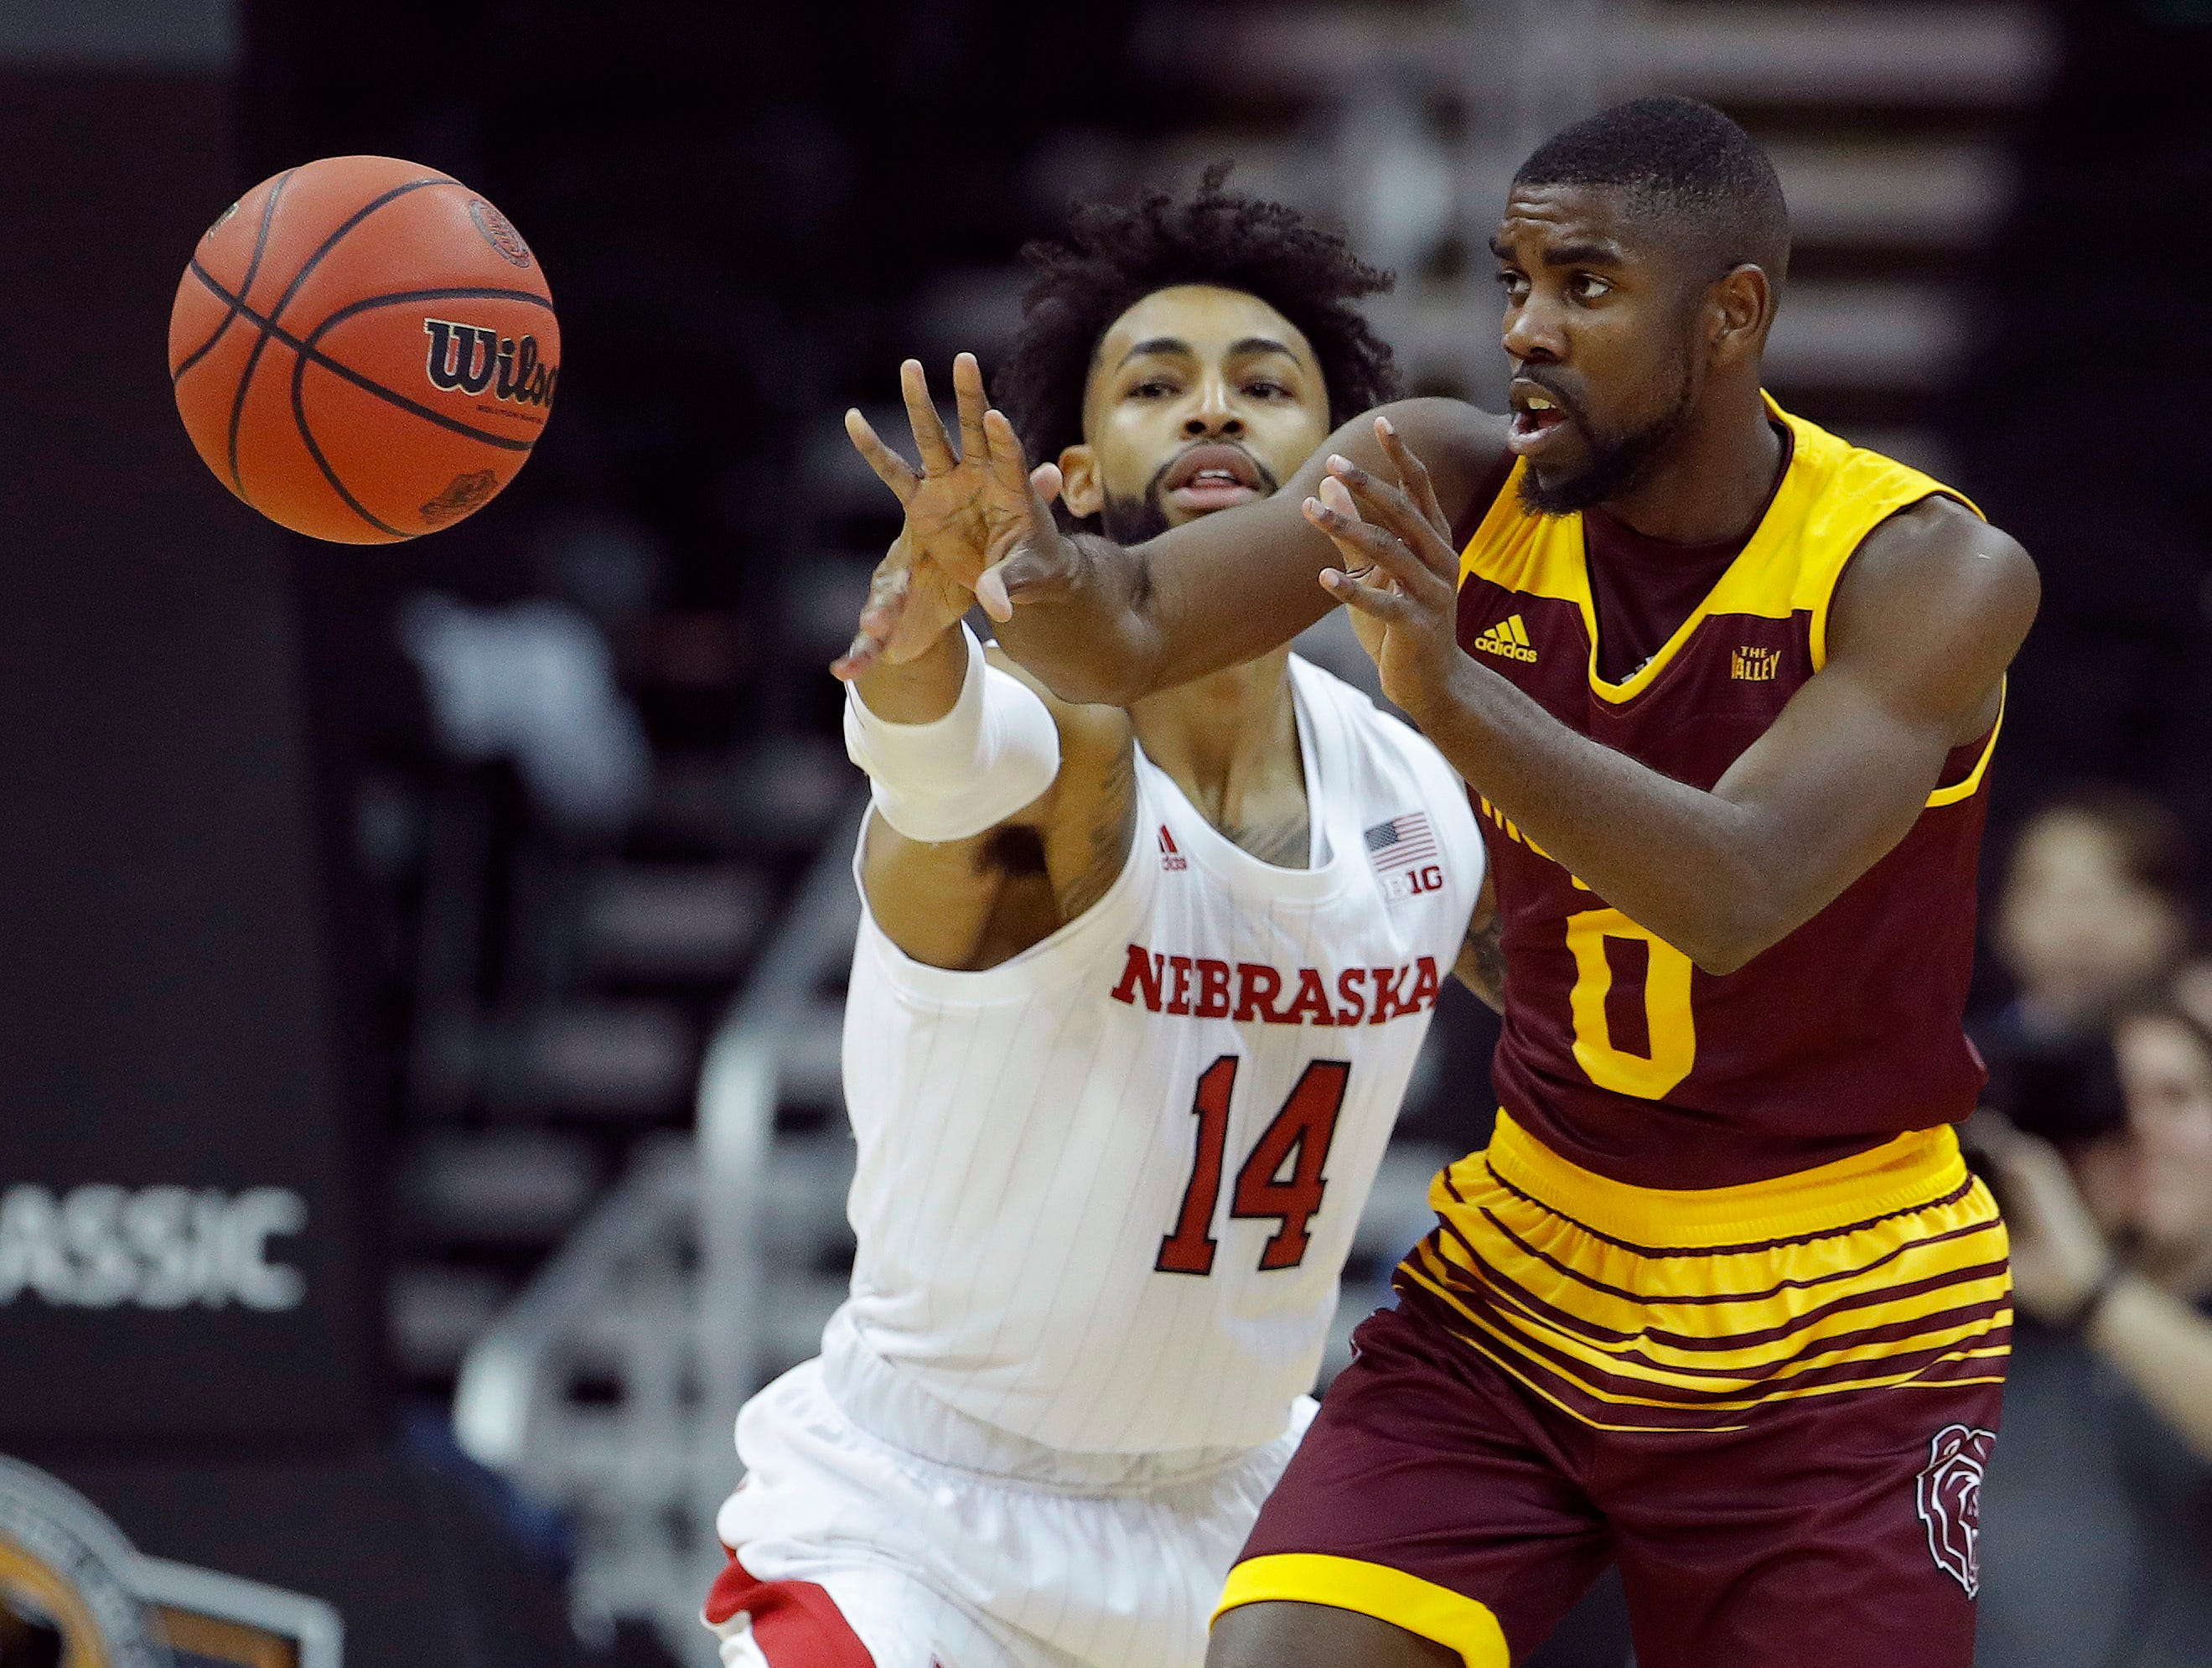 Missouri State's Josh Webster (0) passes under pressure from Nebraska's Isaac Copeland Jr. (14) during the first half of an NCAA college basketball game Monday, Nov. 19, 2018, in Kansas City, Mo. (AP Photo/Charlie Riedel)